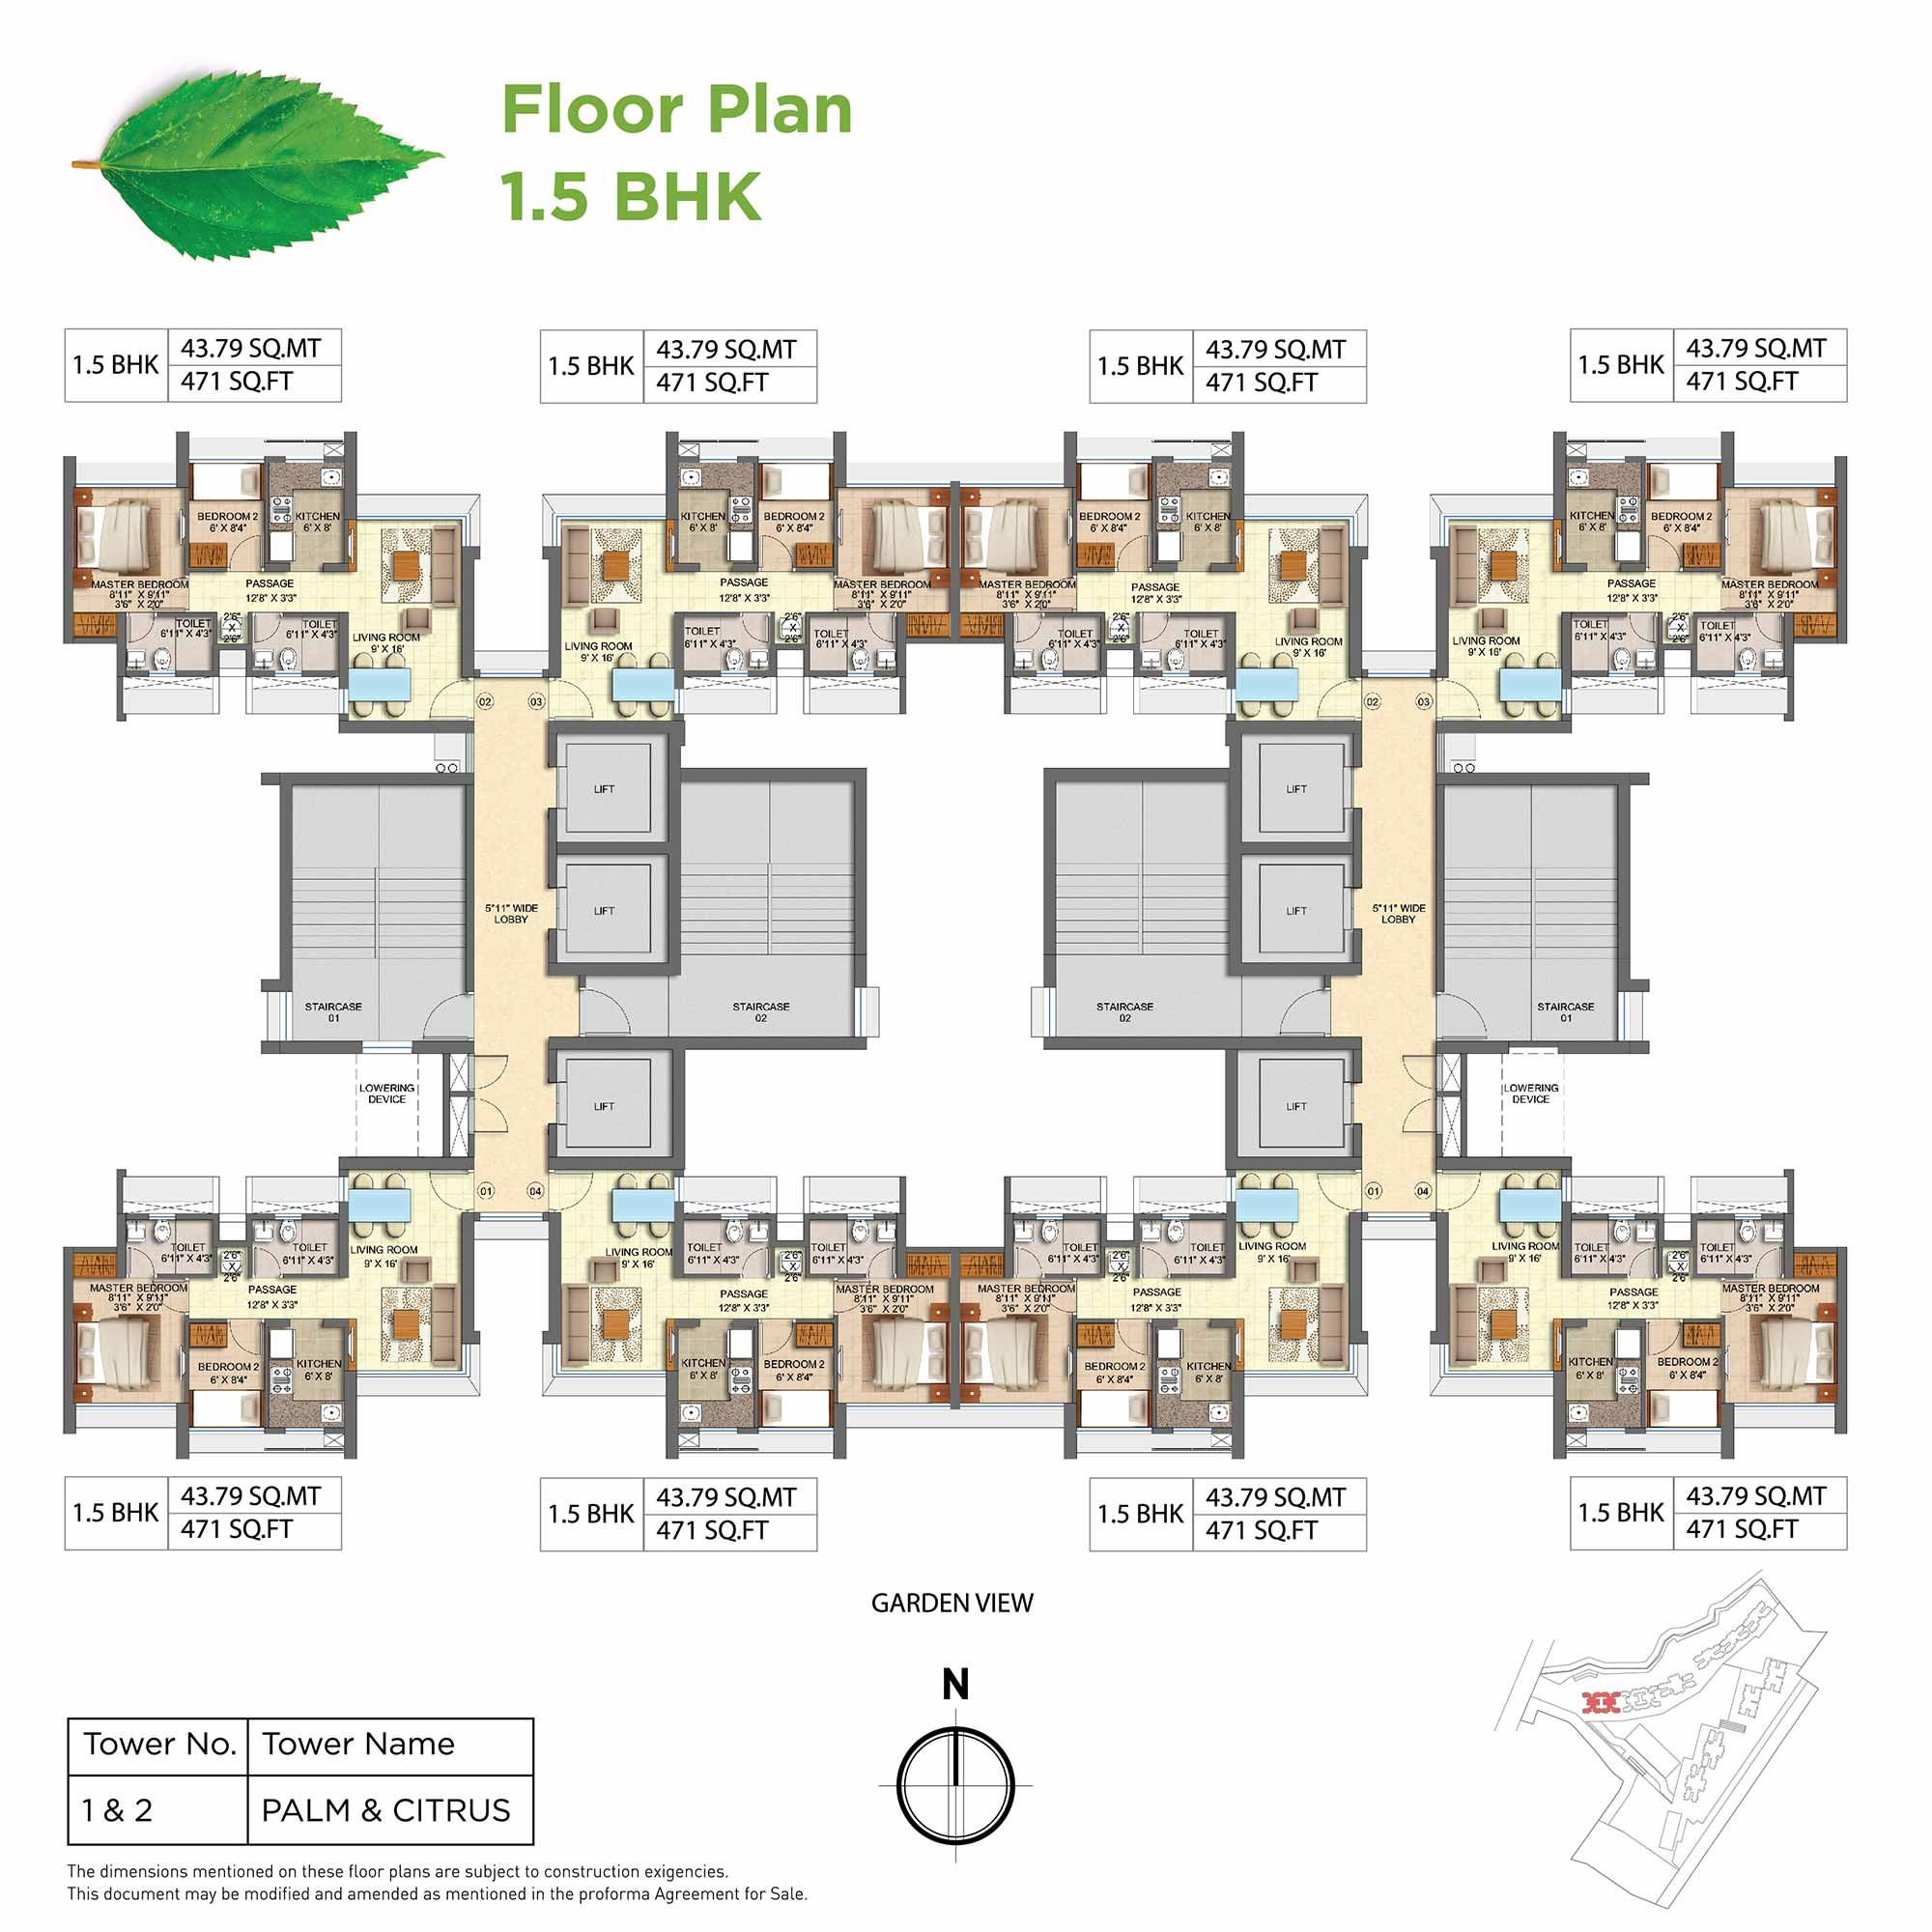 floor-plans-Picture-runwal-forests-2838459